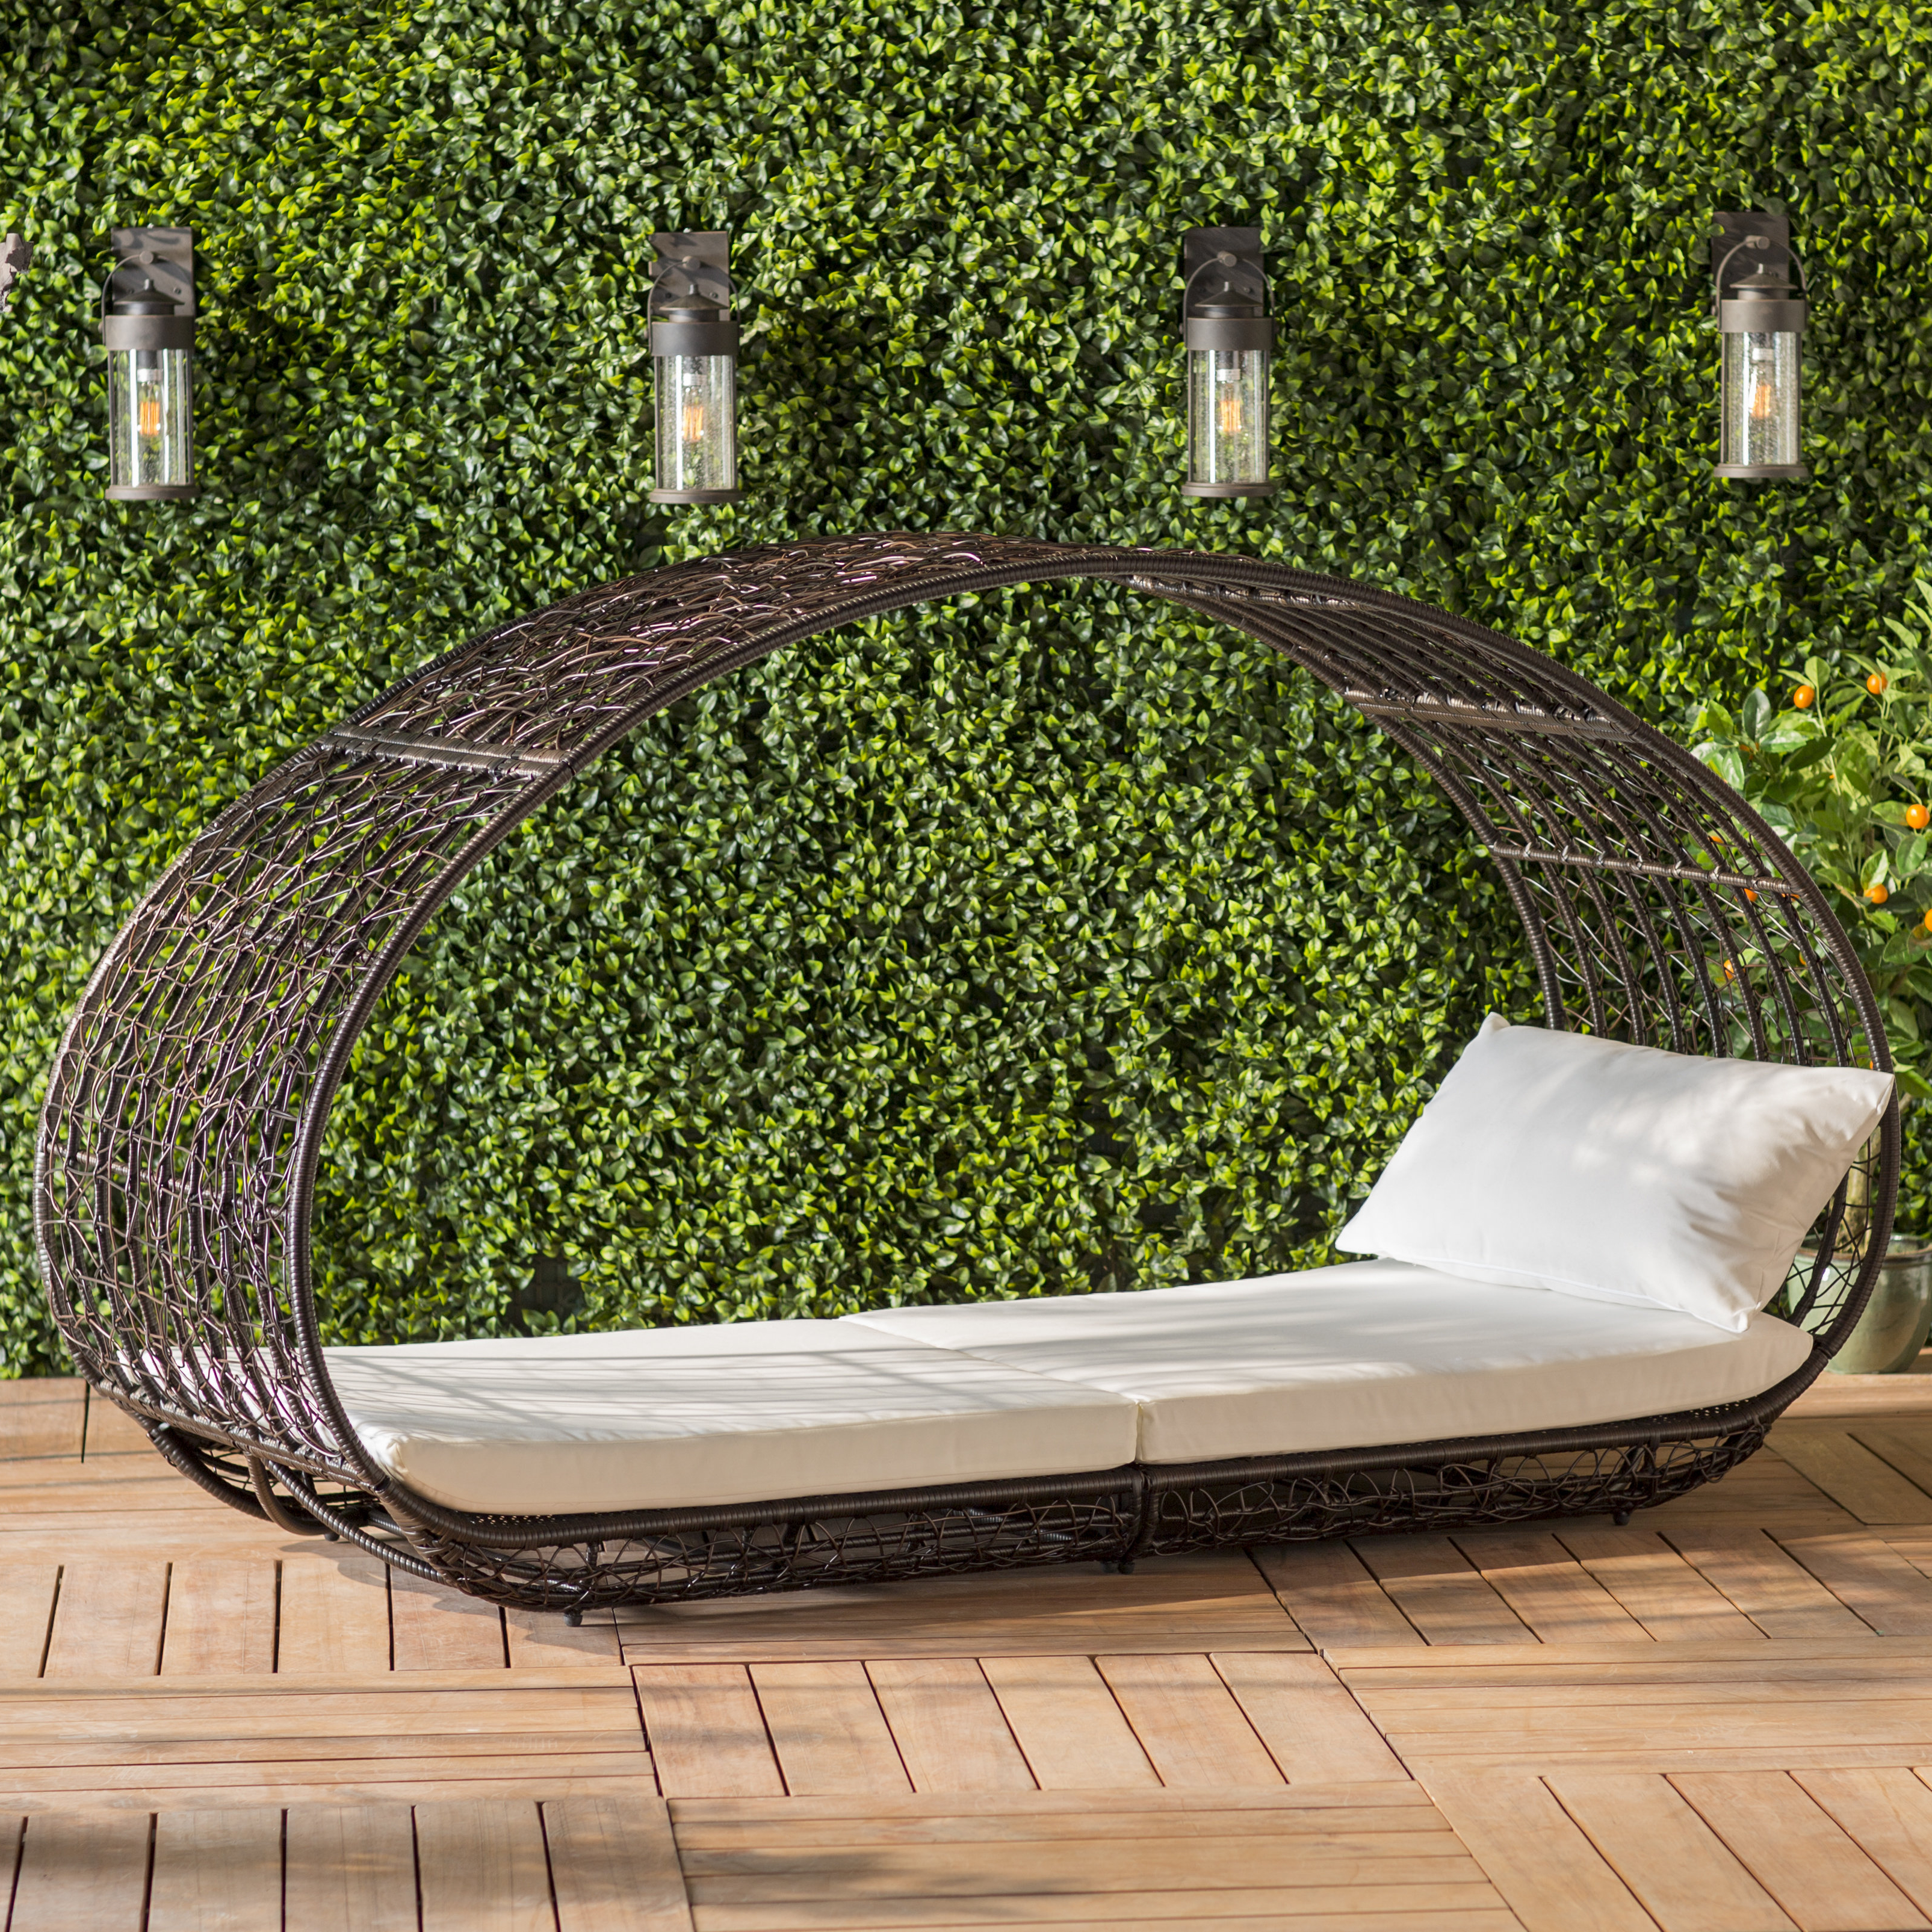 Lavina Outdoor Patio Daybeds With Cushions Inside Fashionable Lavina Outdoor Patio Daybed With Cushions (View 8 of 20)